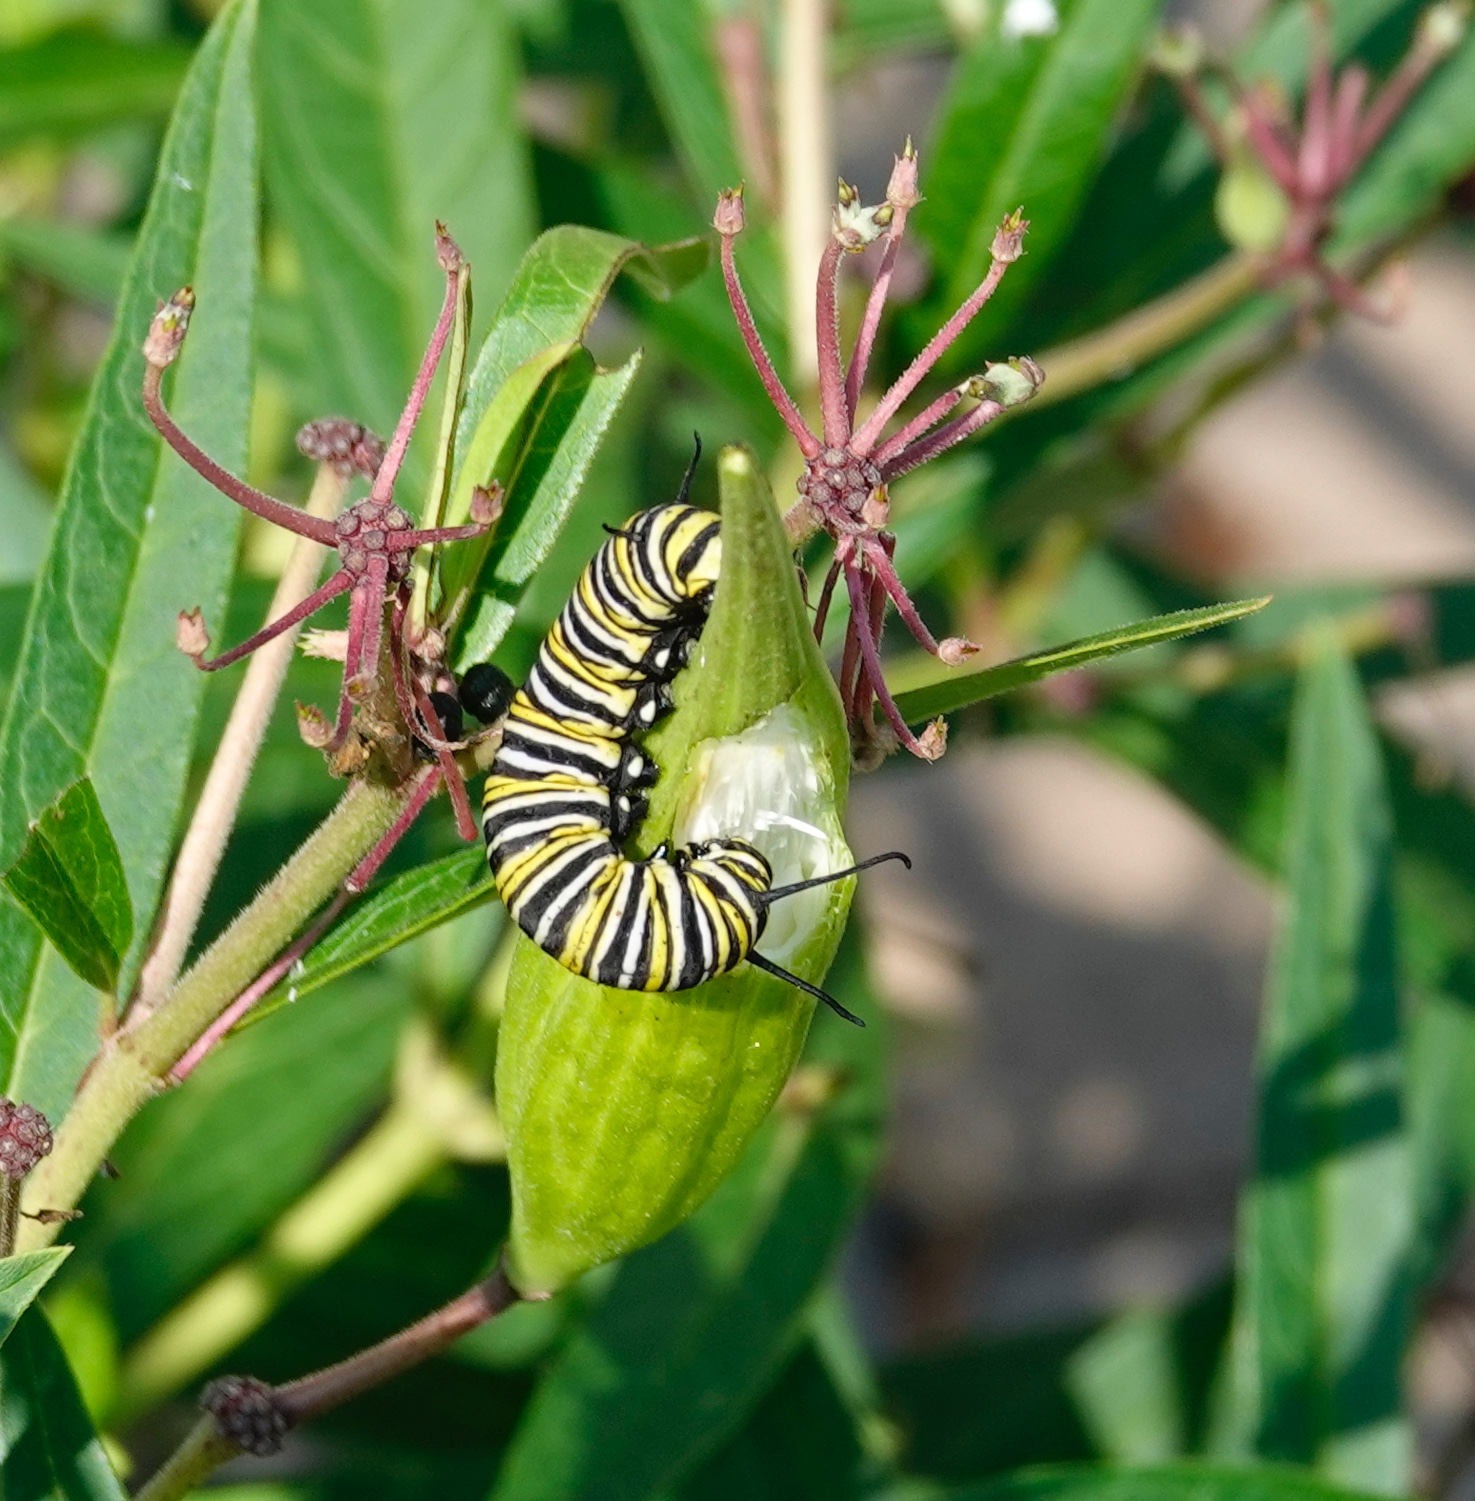 This monarch caterpillar was eating the seed pod of a swamp milkweed.